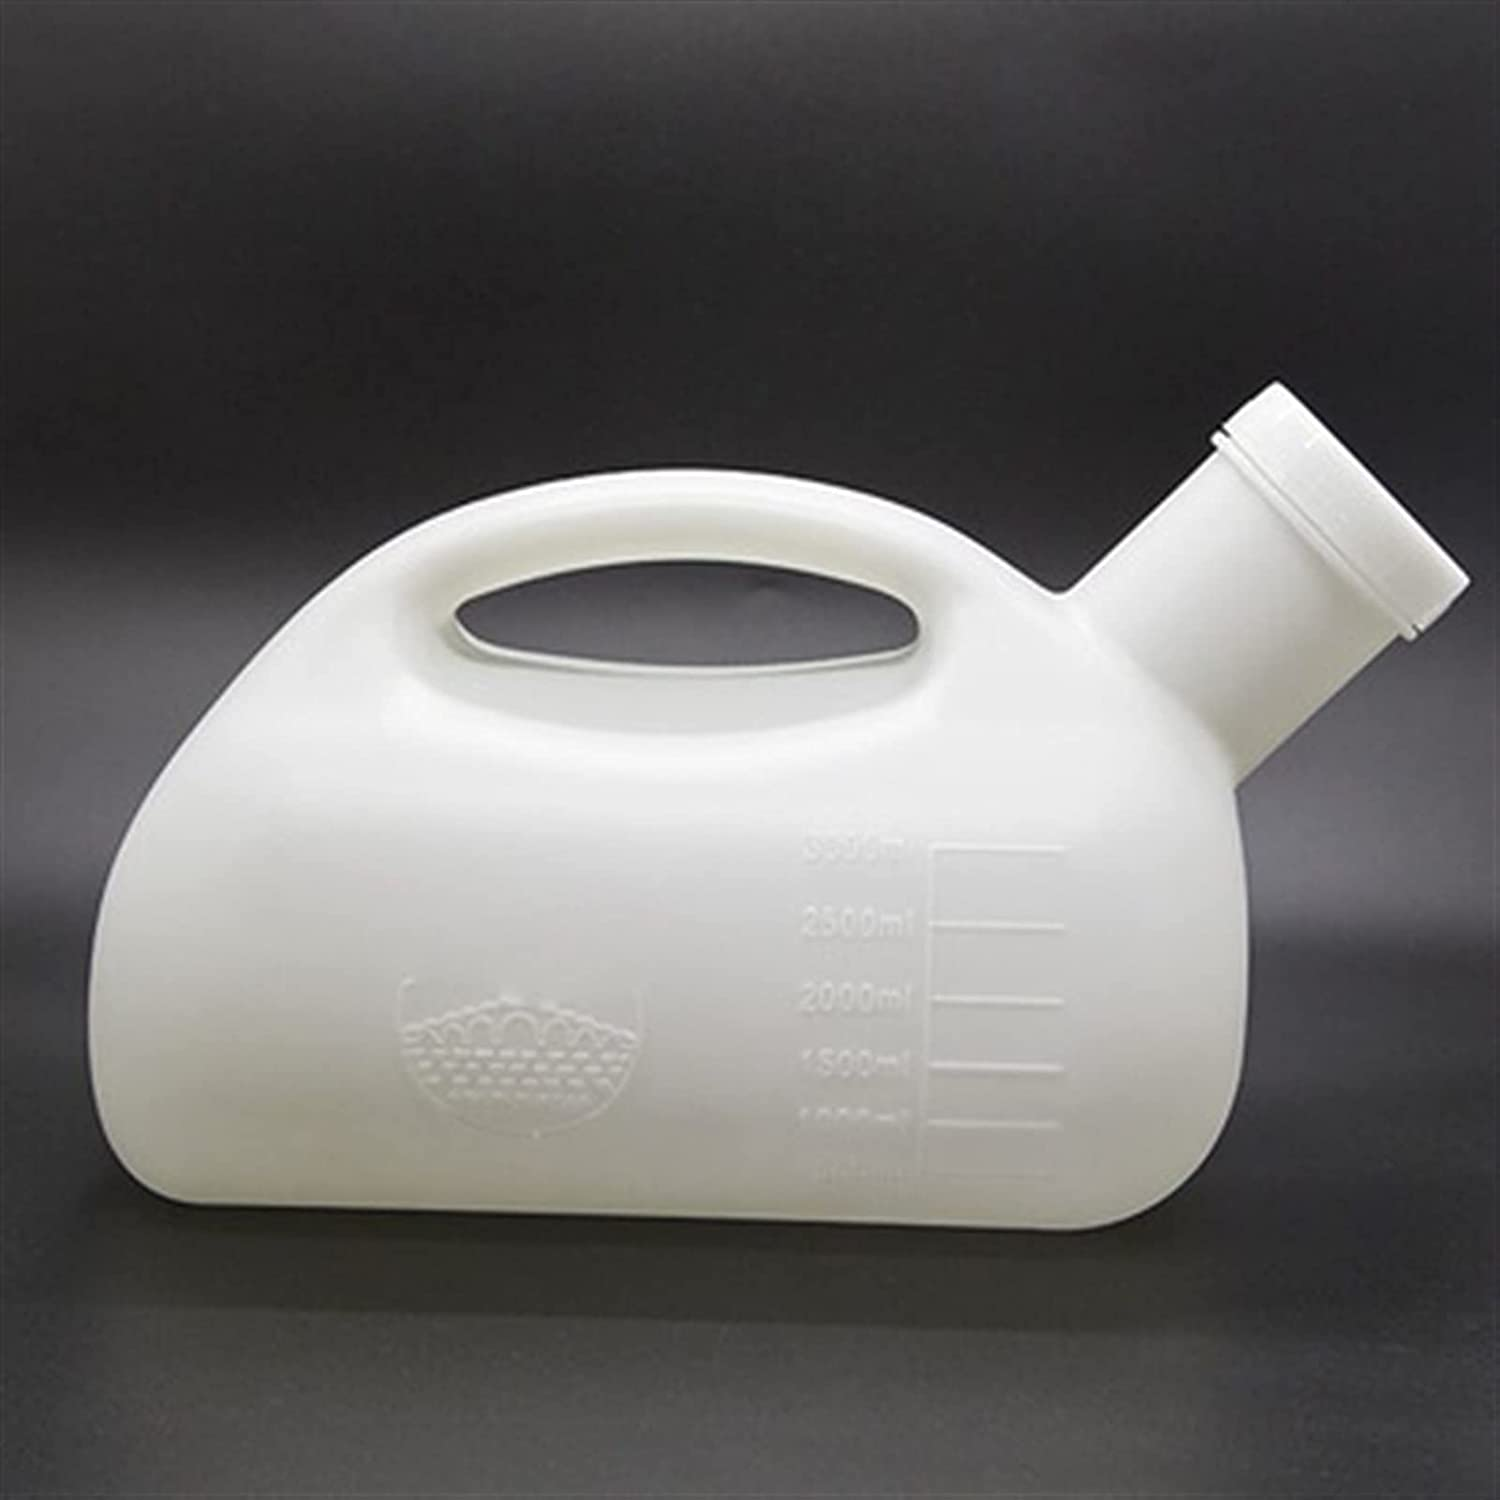 Large Capacity Urinal Reusable Urine Choice Best The Bottle Trust for High material